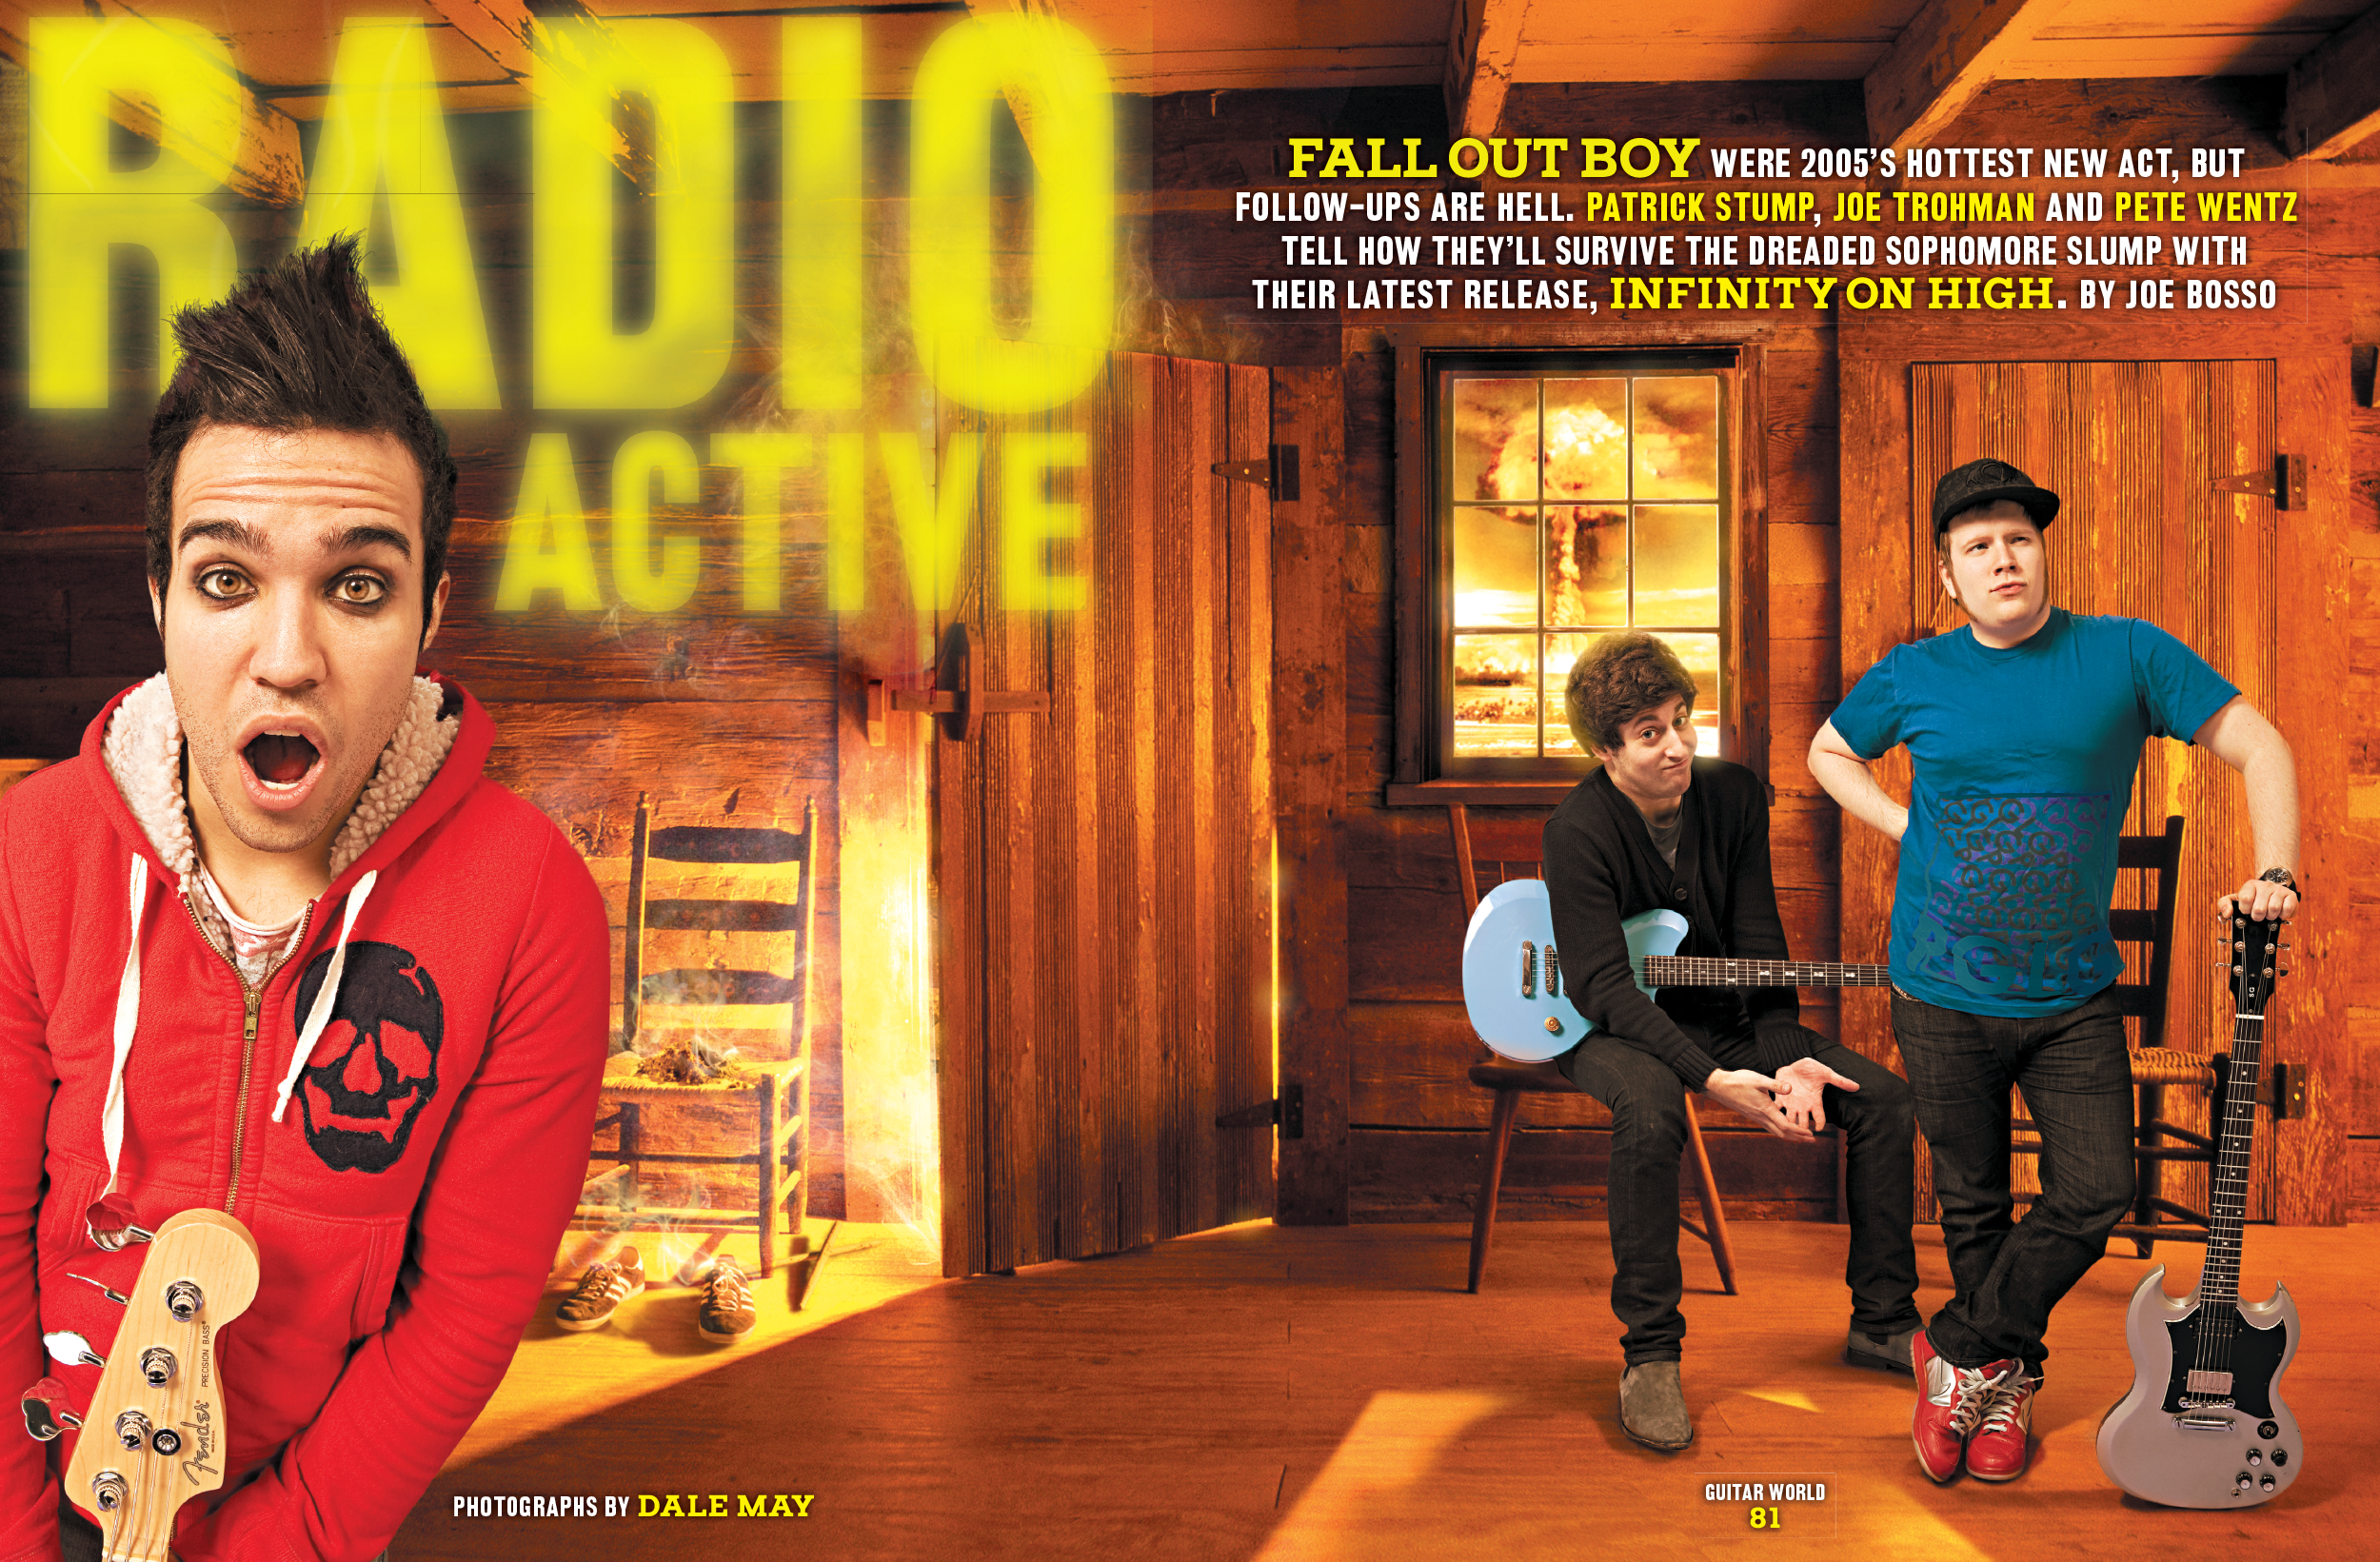 01_02_02 Fall Out Boy_LARGE.png